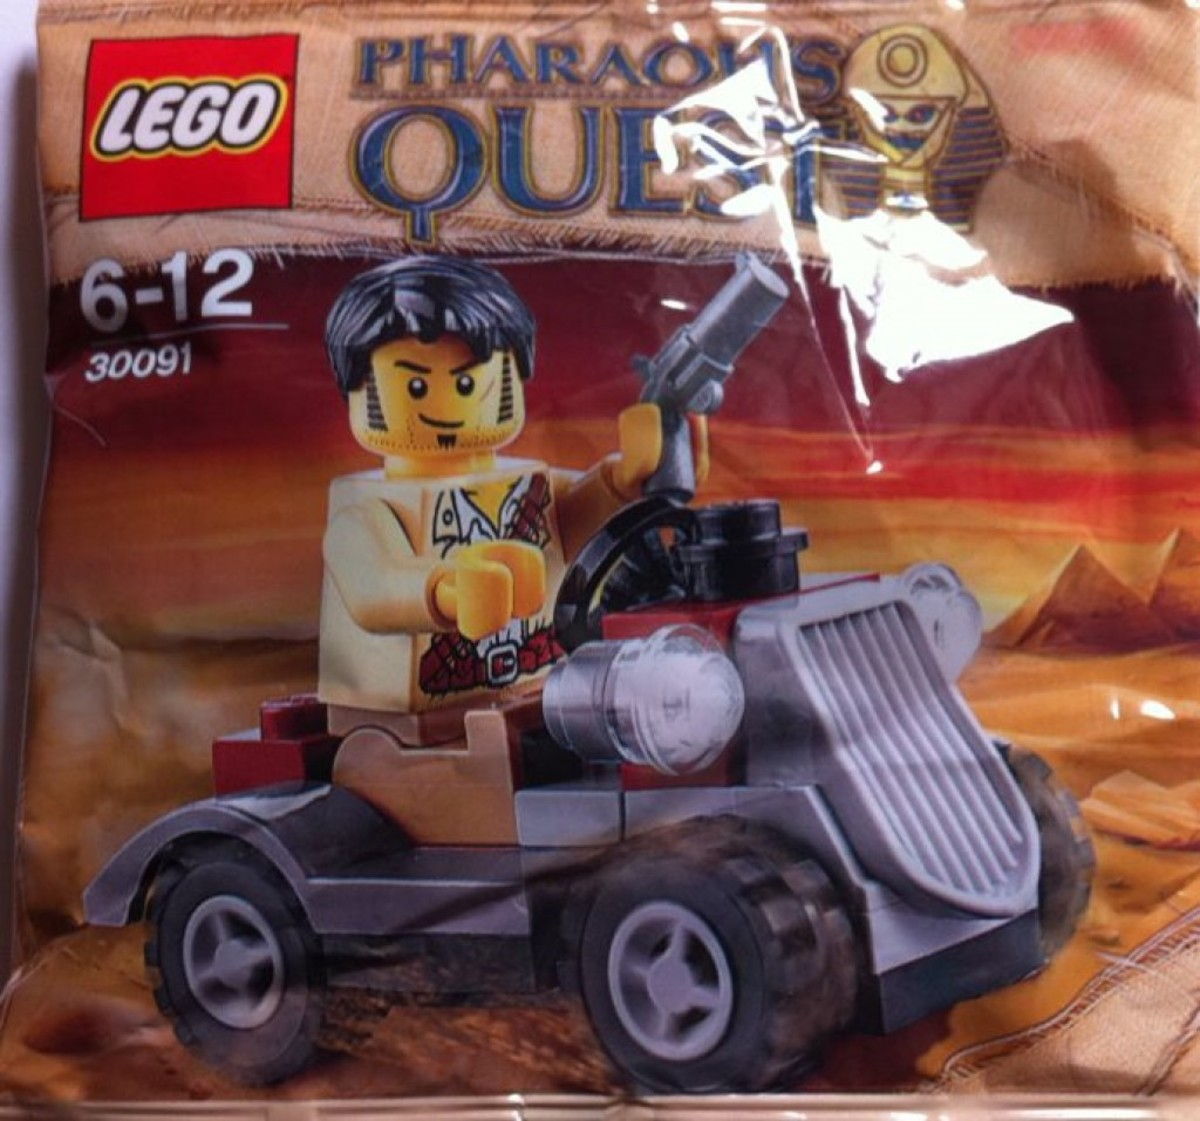 LEGO Pharaoh's Quest Desert Rover 30091 Minifigure Jake Raines Polybag